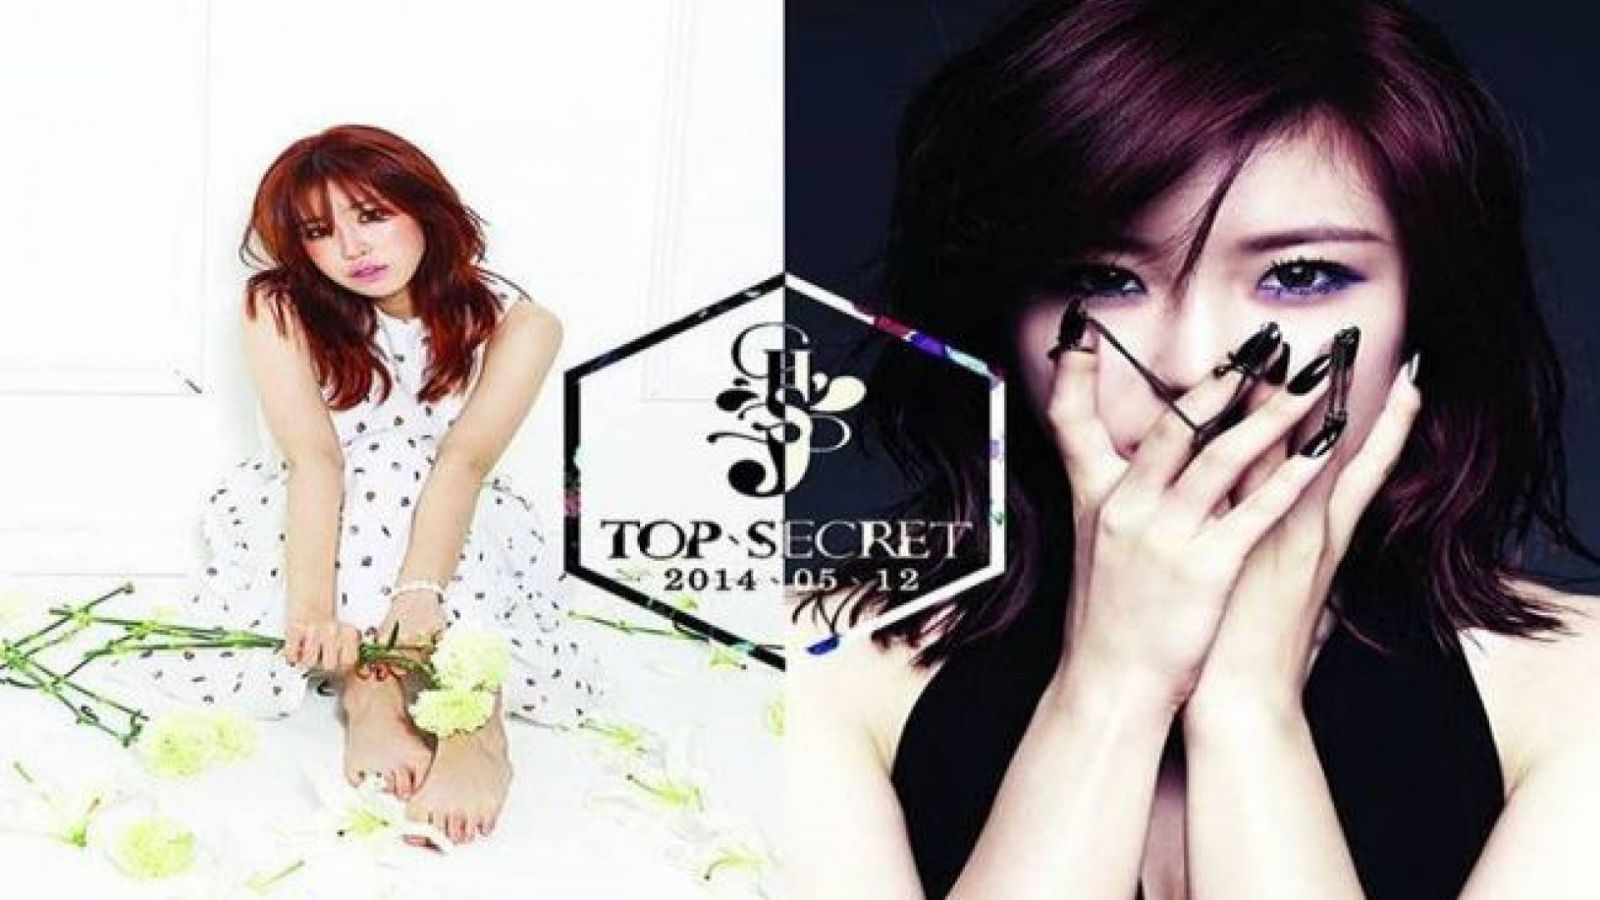 TOP SECRET de Hyoseong: single solo de estreia © TS Entertainment